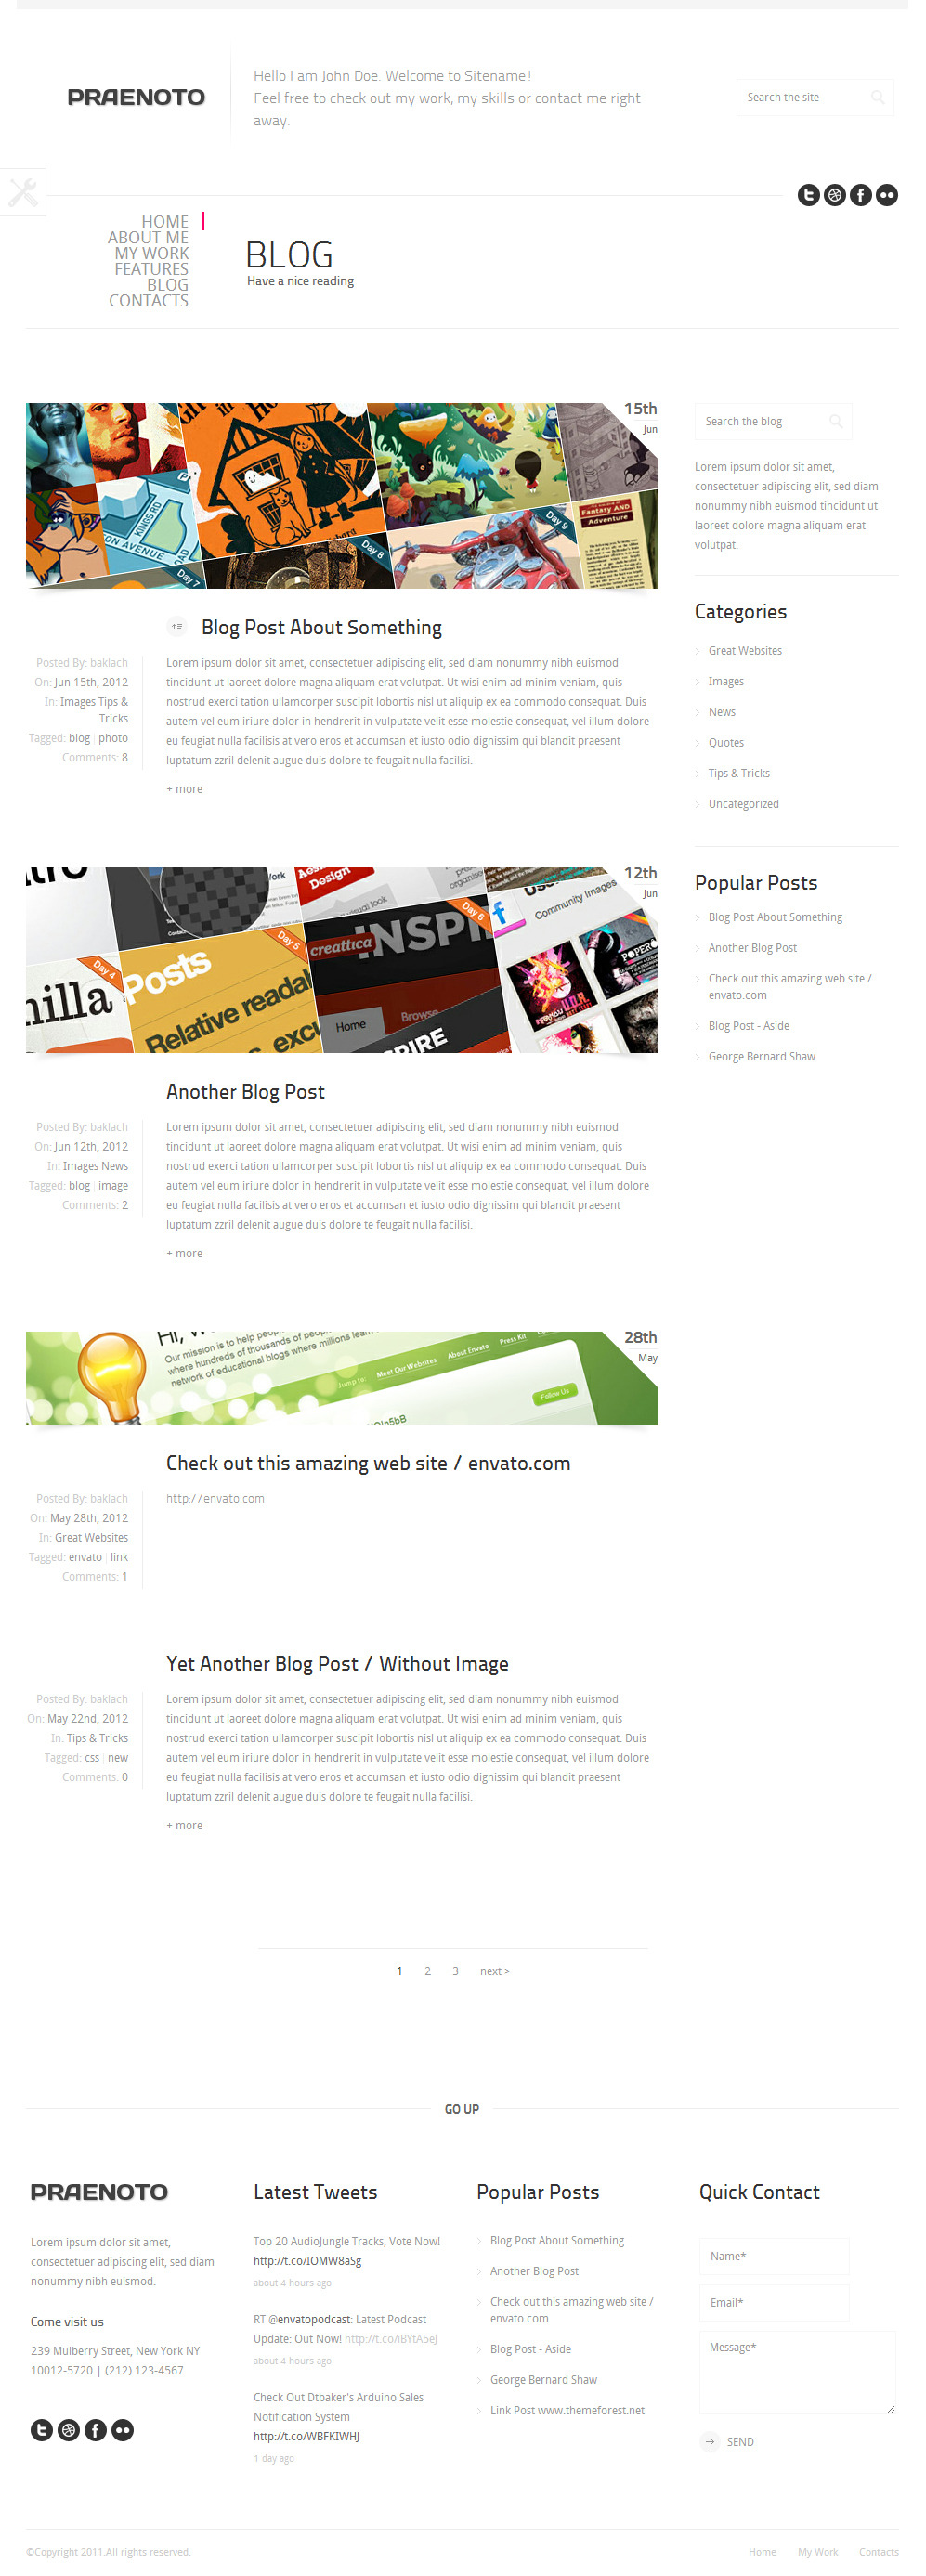 Praenoto - Clean & Minimalist WordPress Theme - Screenshot 9. Blog page.